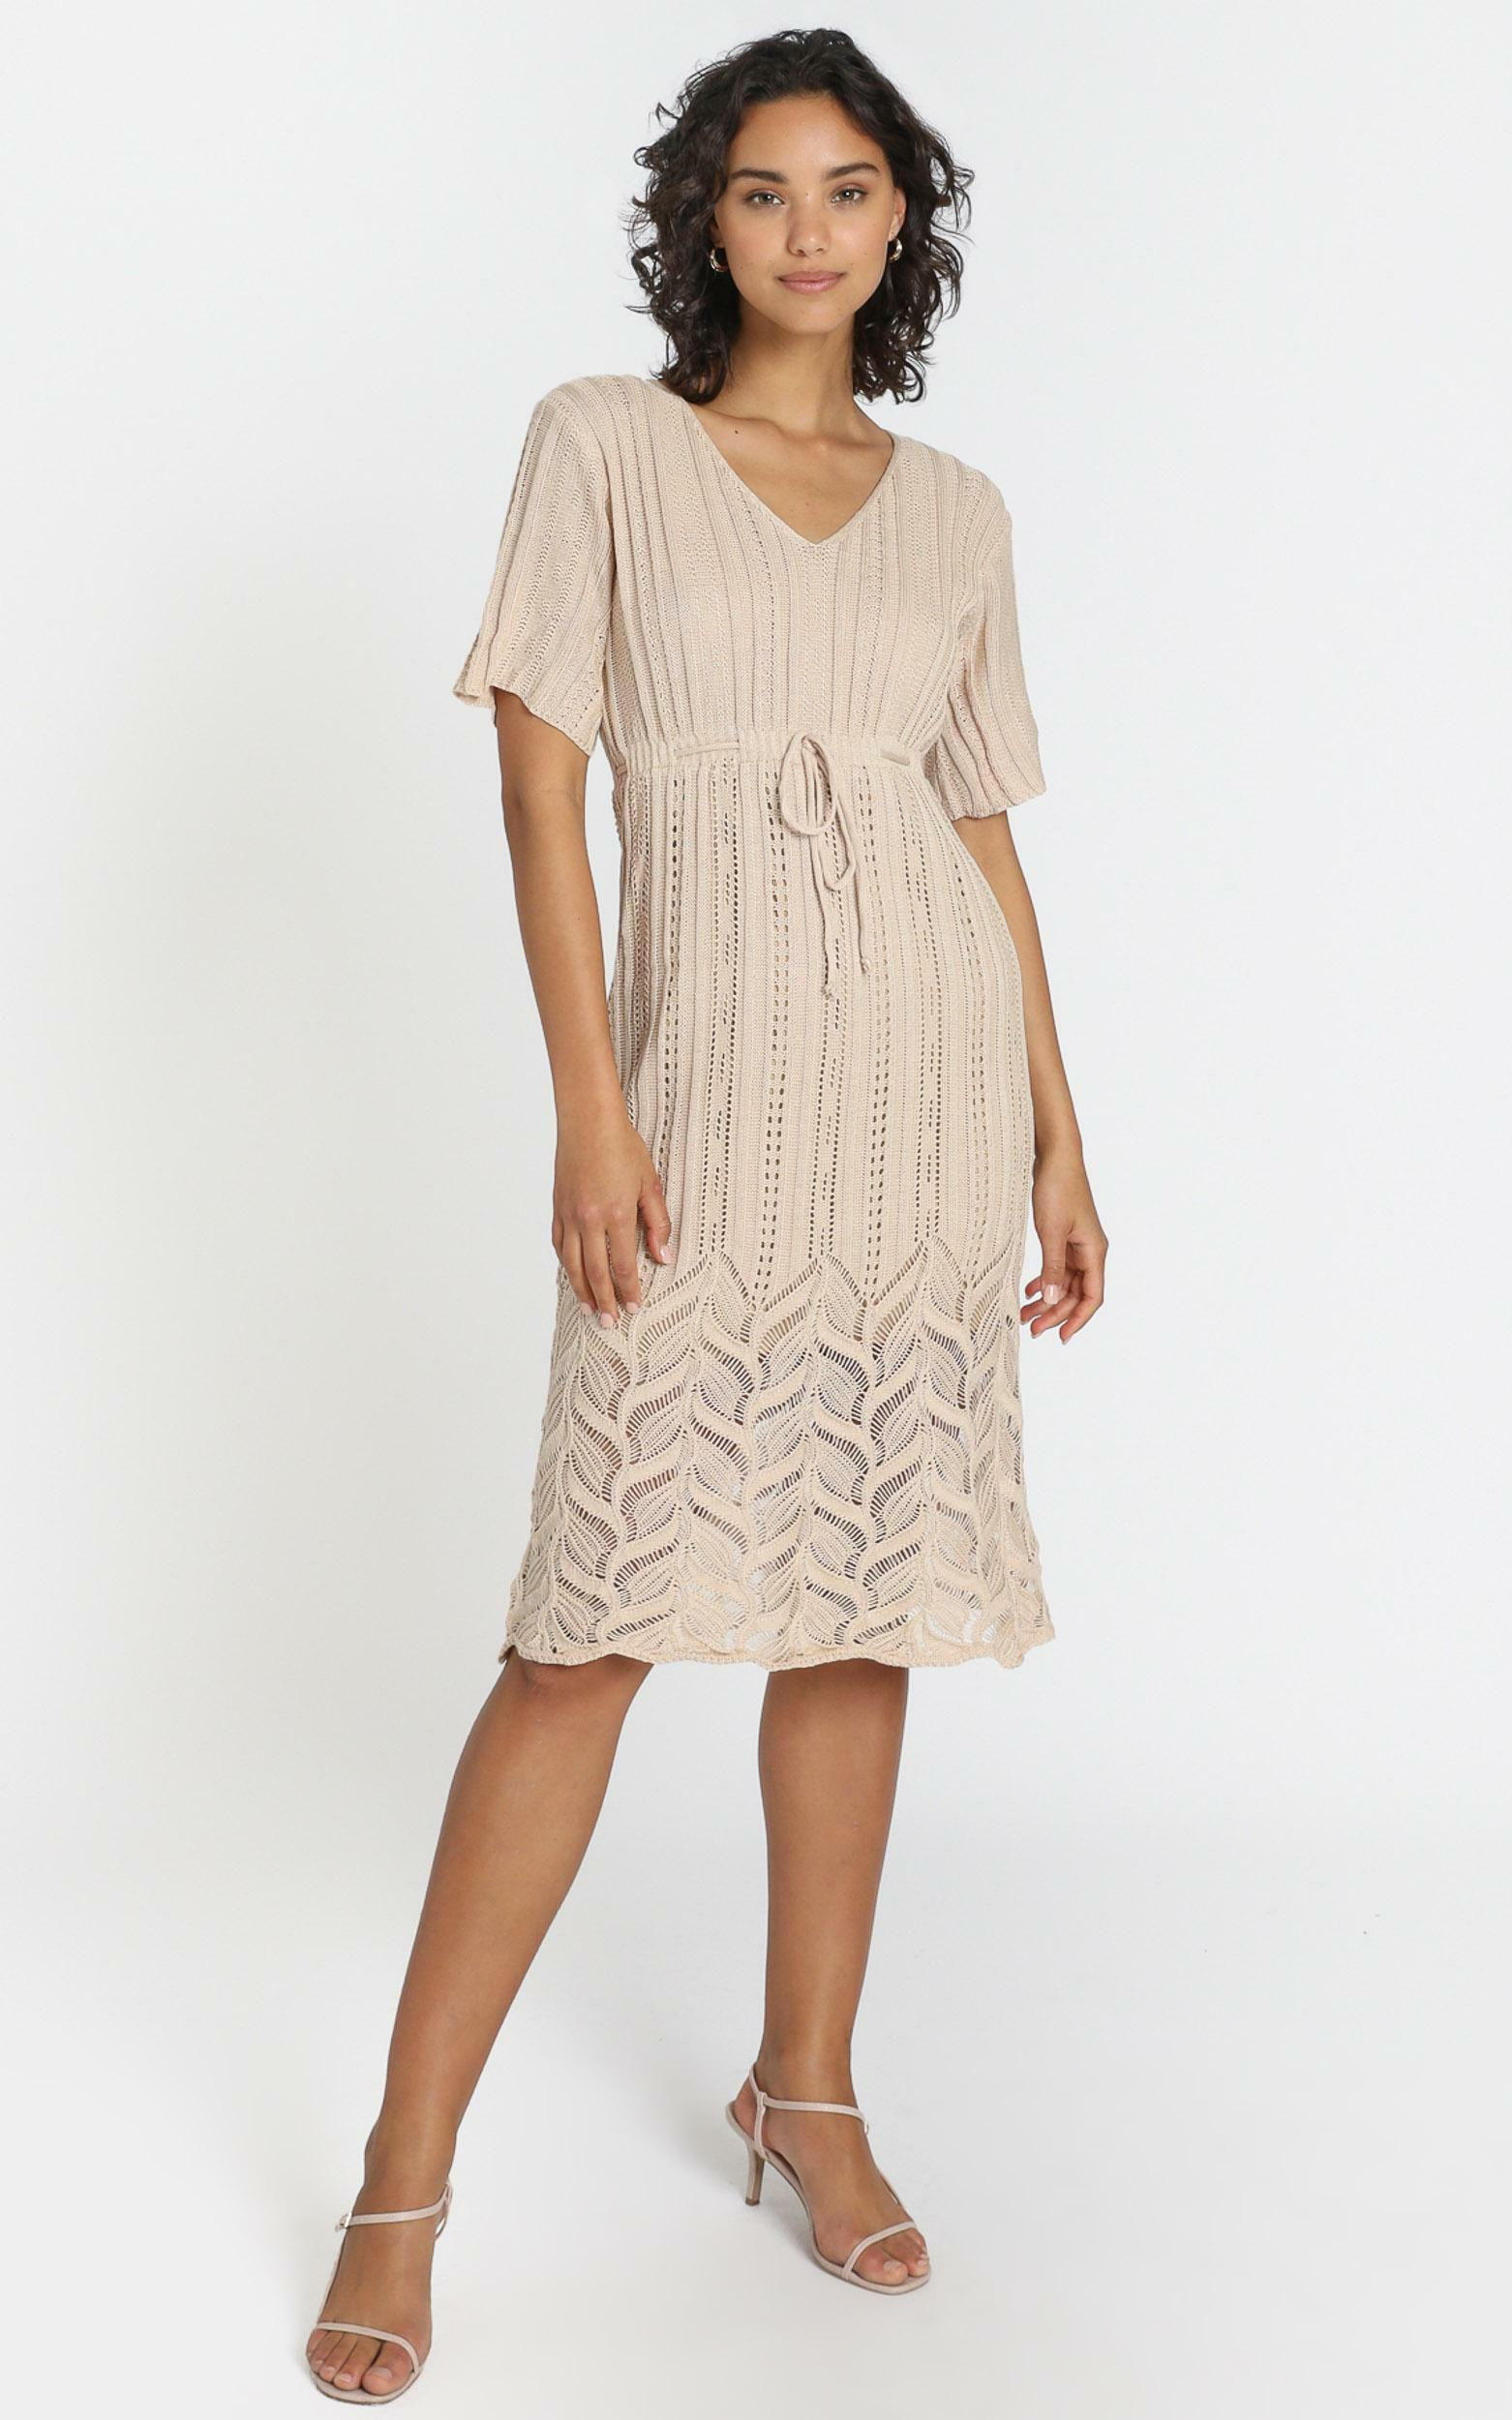 Alyssia Dress in Beige - S, Beige, hi-res image number null